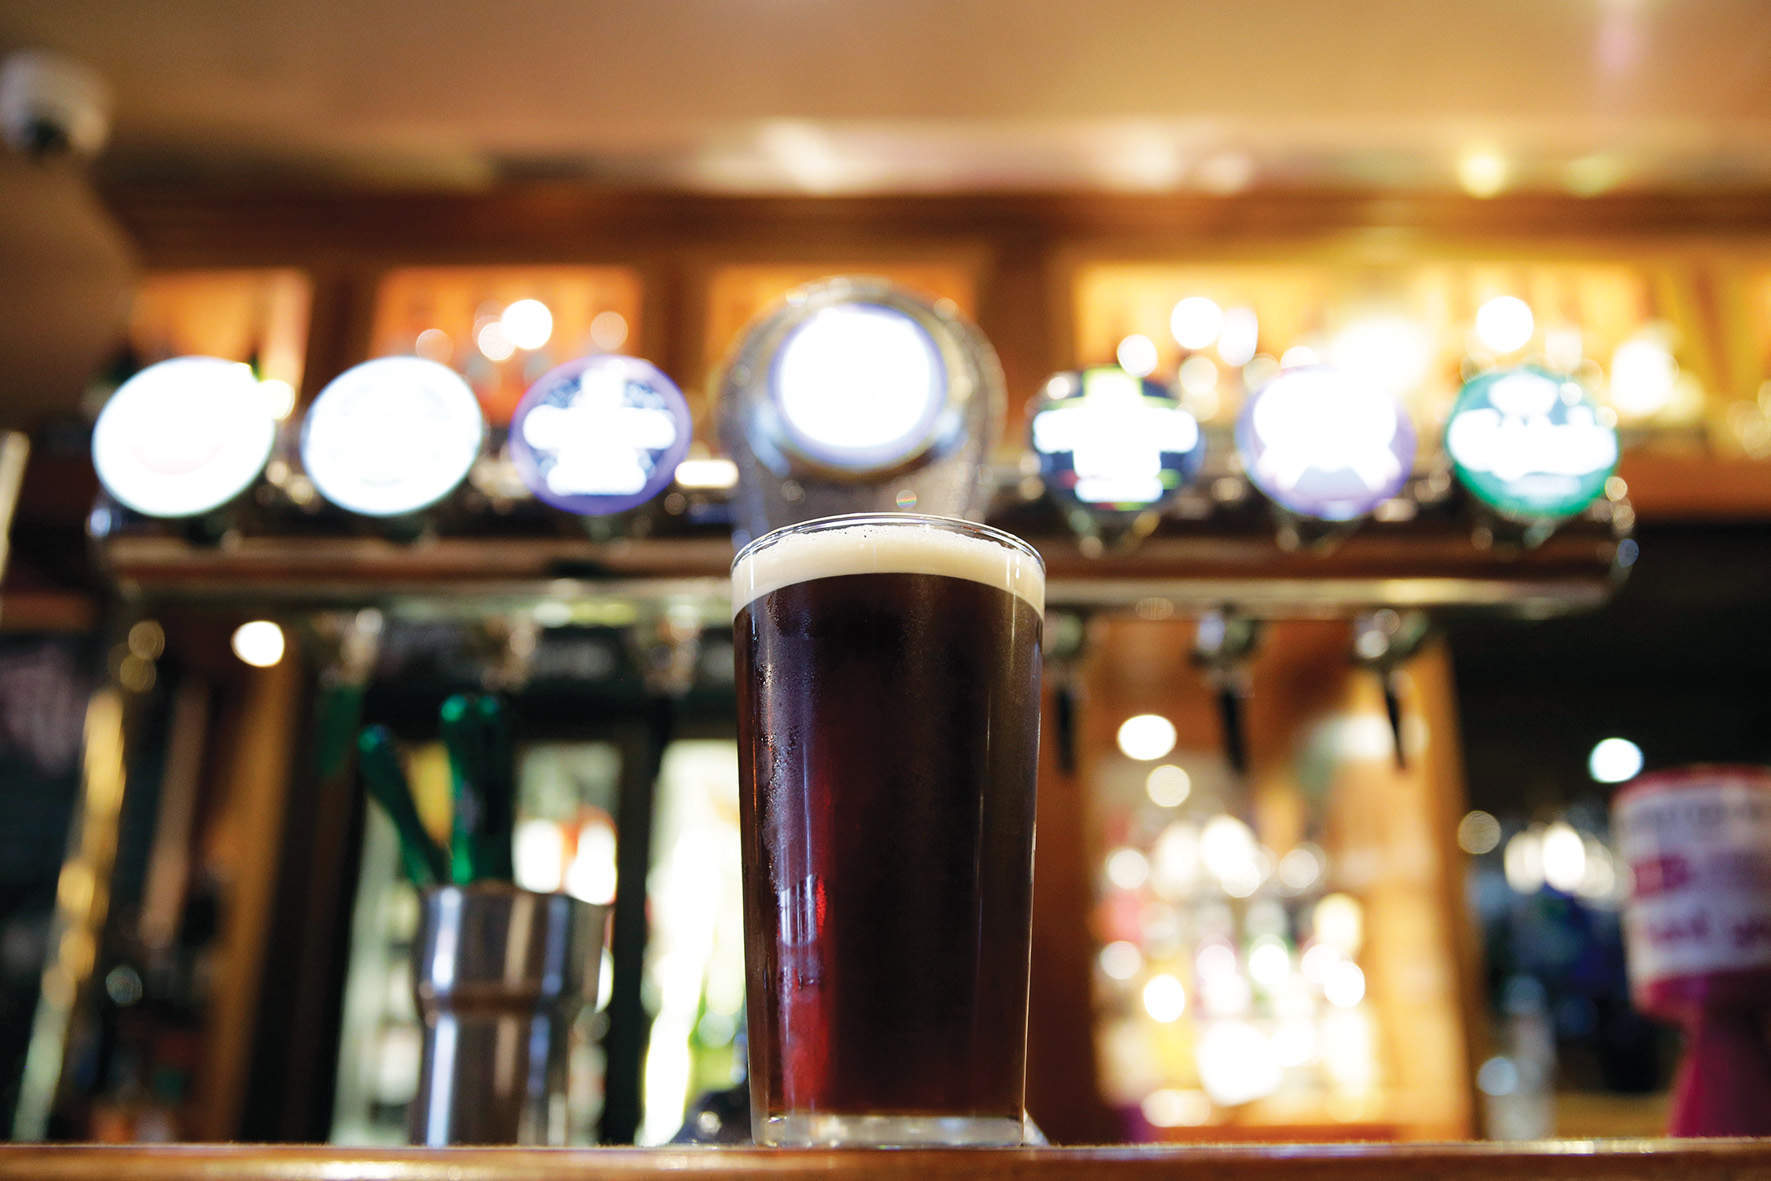 The cult of Wetherspoons: why does the pub chain inspire such devotion?